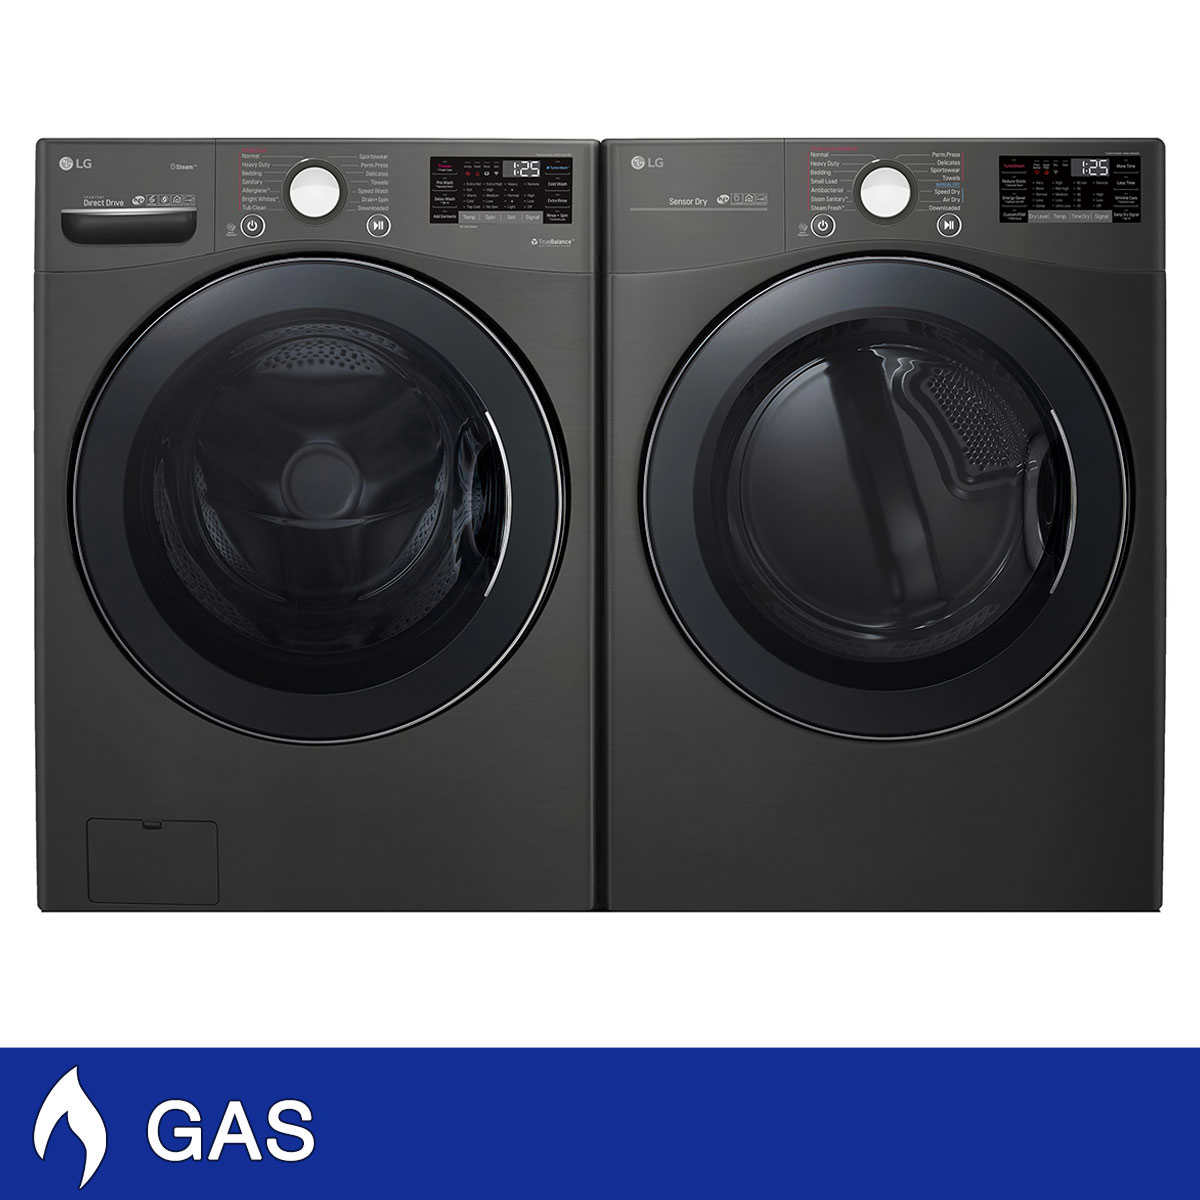 Lg Wifi Enabled 4 5cuft Front Load Washer And 7 4cuft Gas Dryer With Optional Pedestals